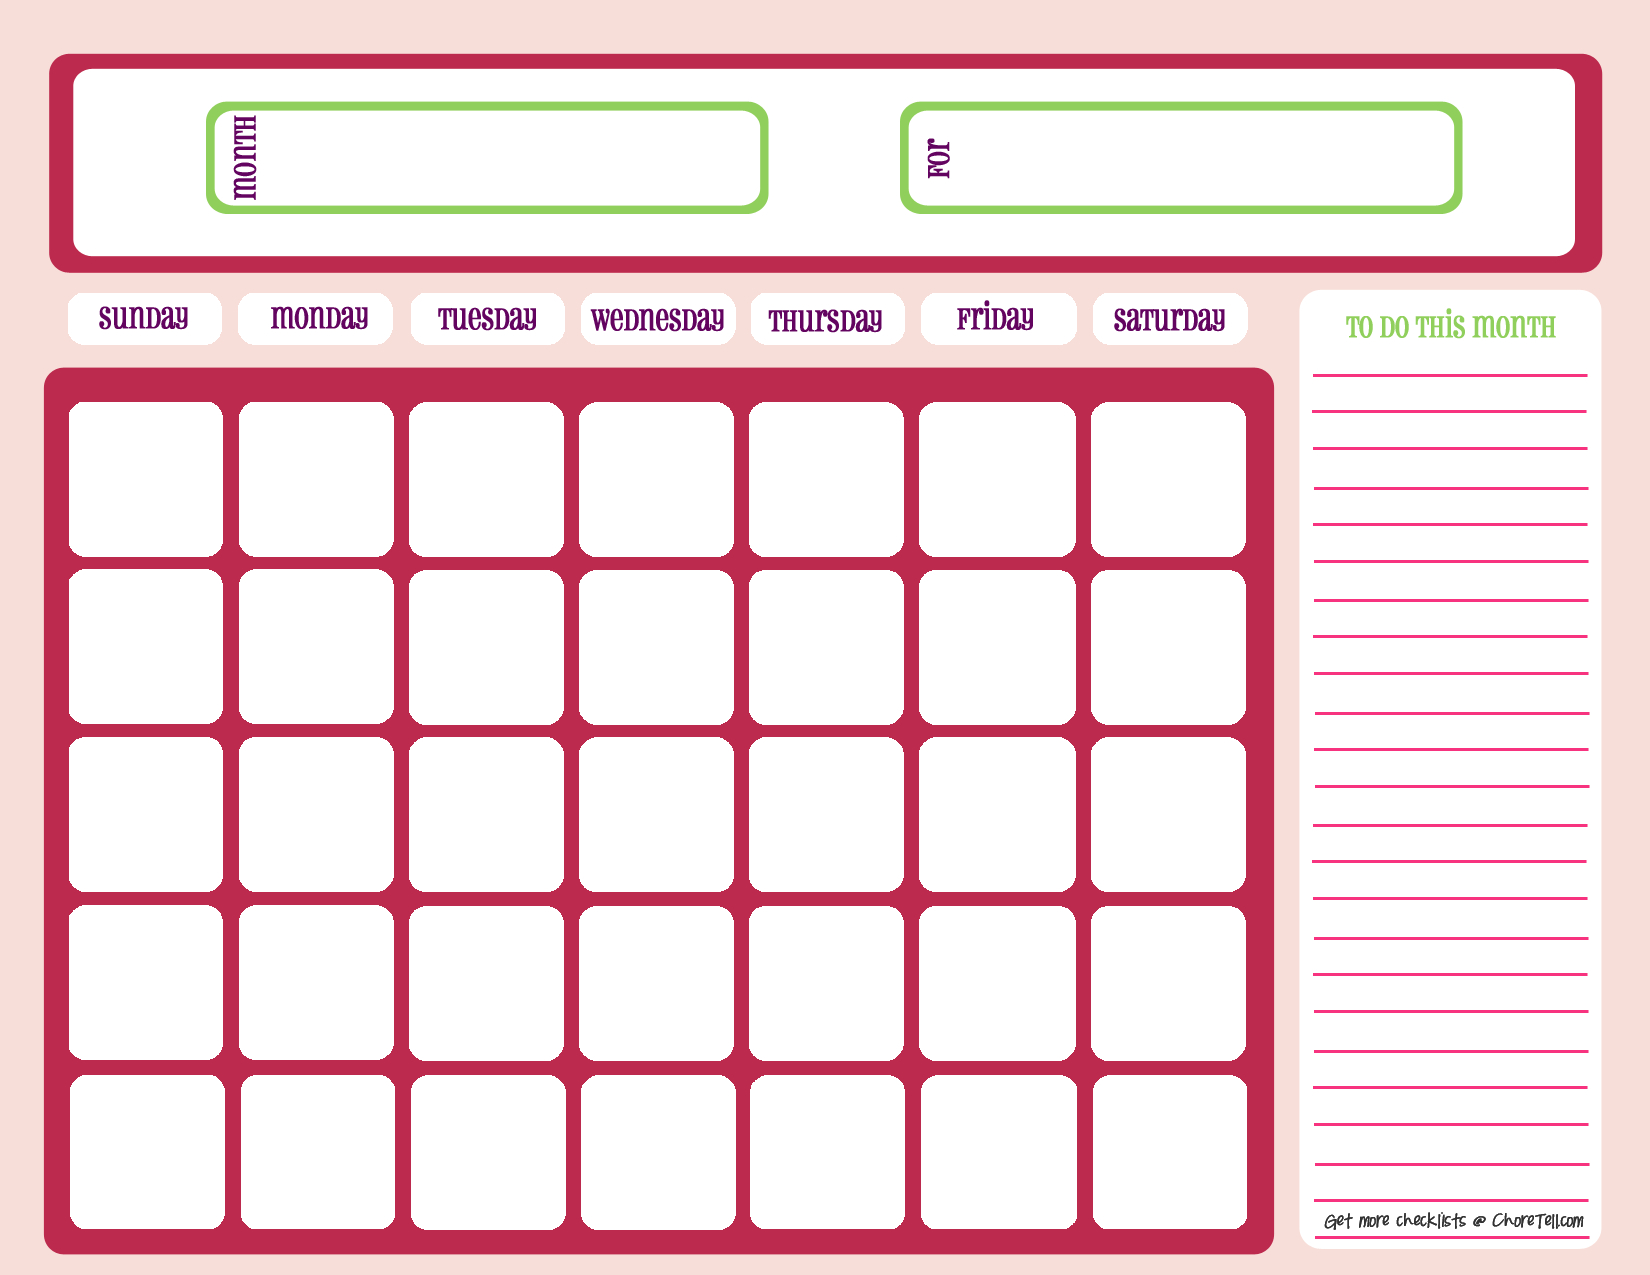 Blank Month Calendar - Pinks - Free Printable Downloads From Choretell in Cute Blank Calendar Page Template